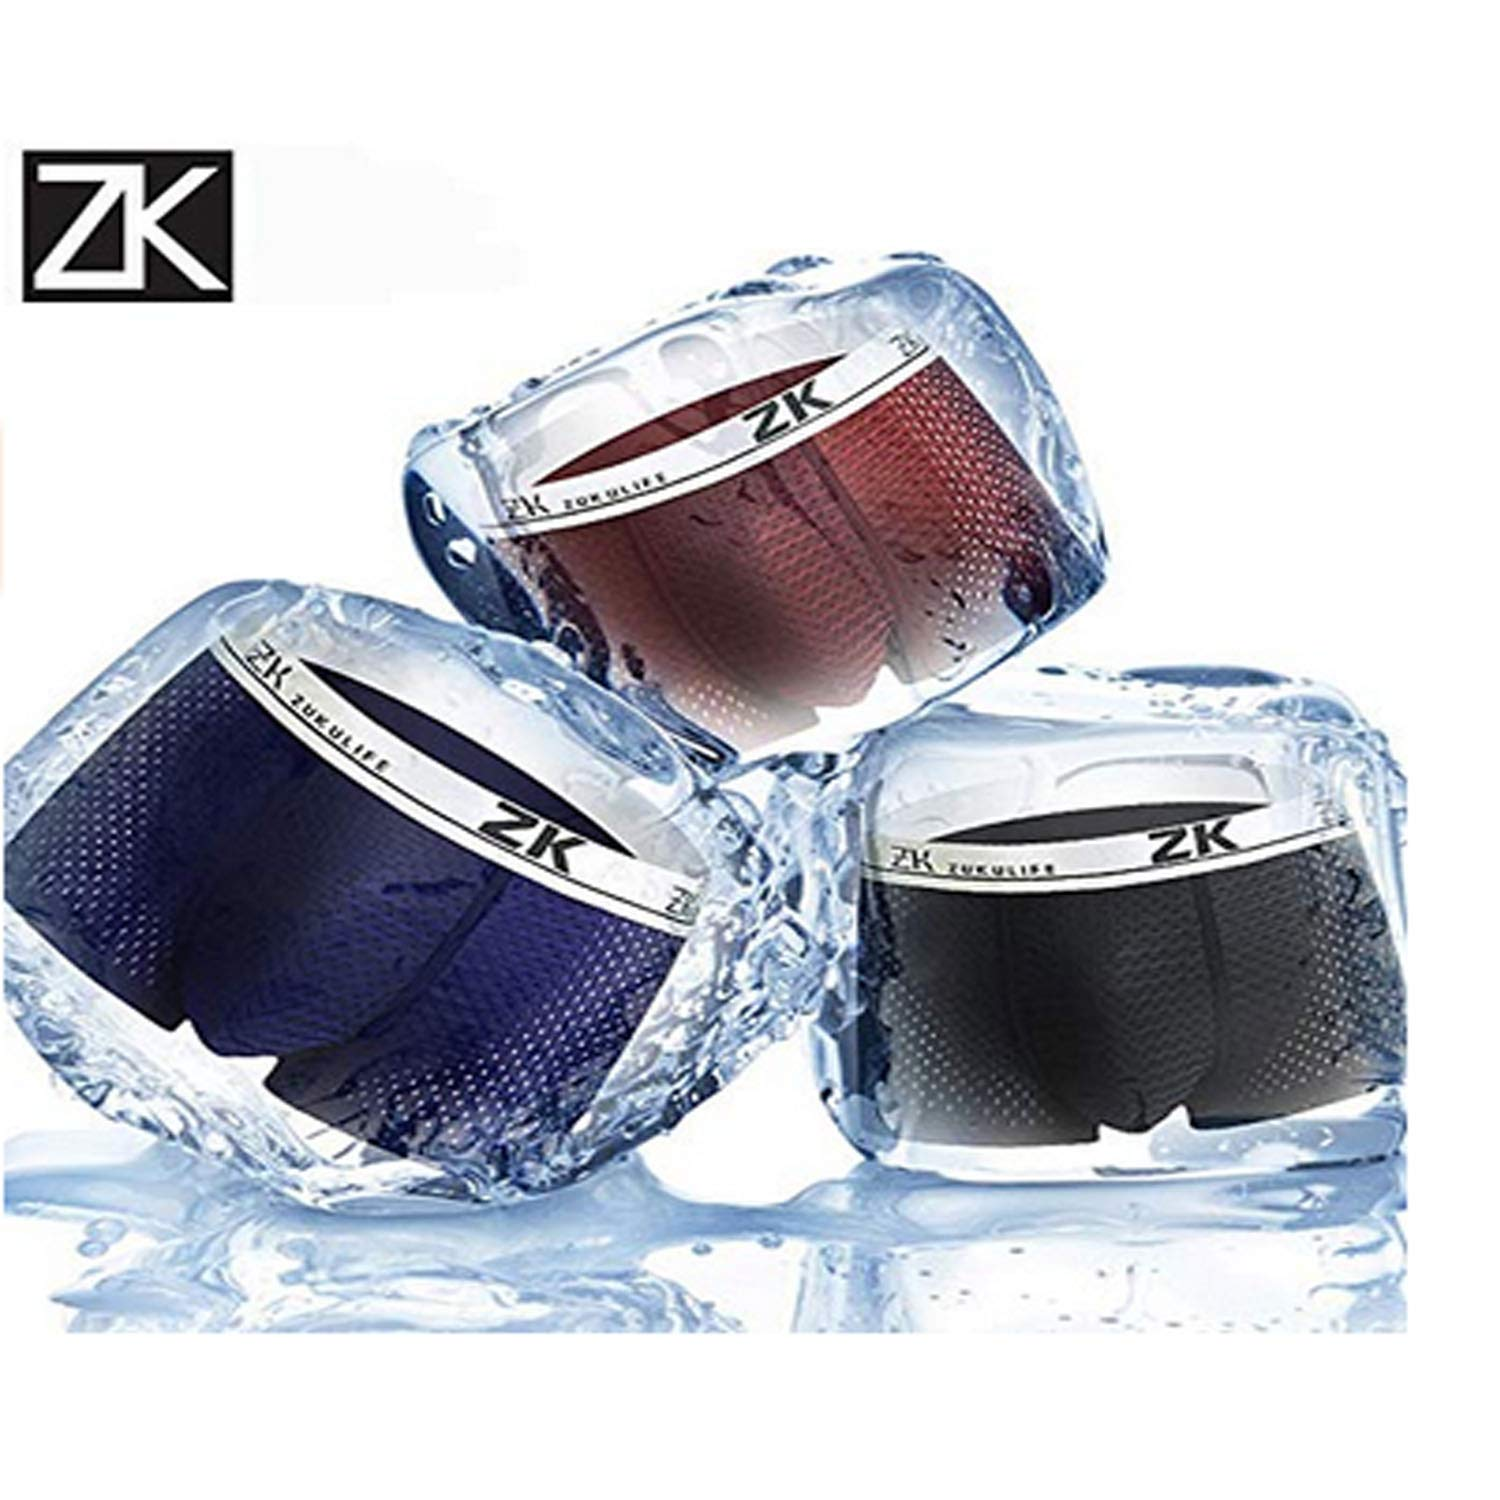 Z-synka Ice Silk Mesh Shorts Summer Thin Thin Dry Underwear Mens Shorts Pack of 4,Breathable Seamless Mens Underwear Set Soft Trunks Underpants Hipster Underpants